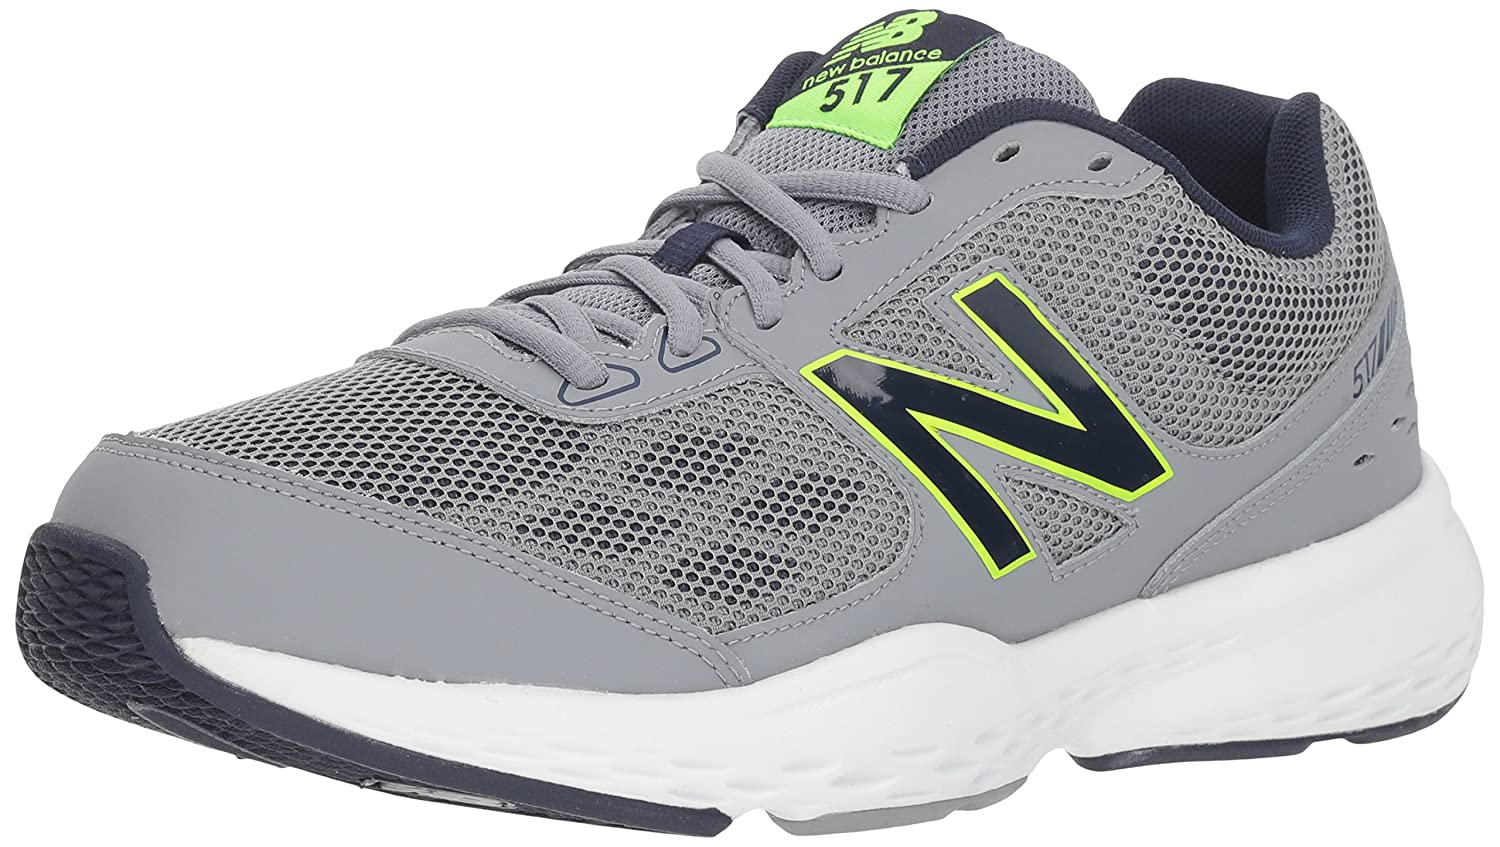 New Balance Men's Mx517v1 Cross Trainer MX517CE1